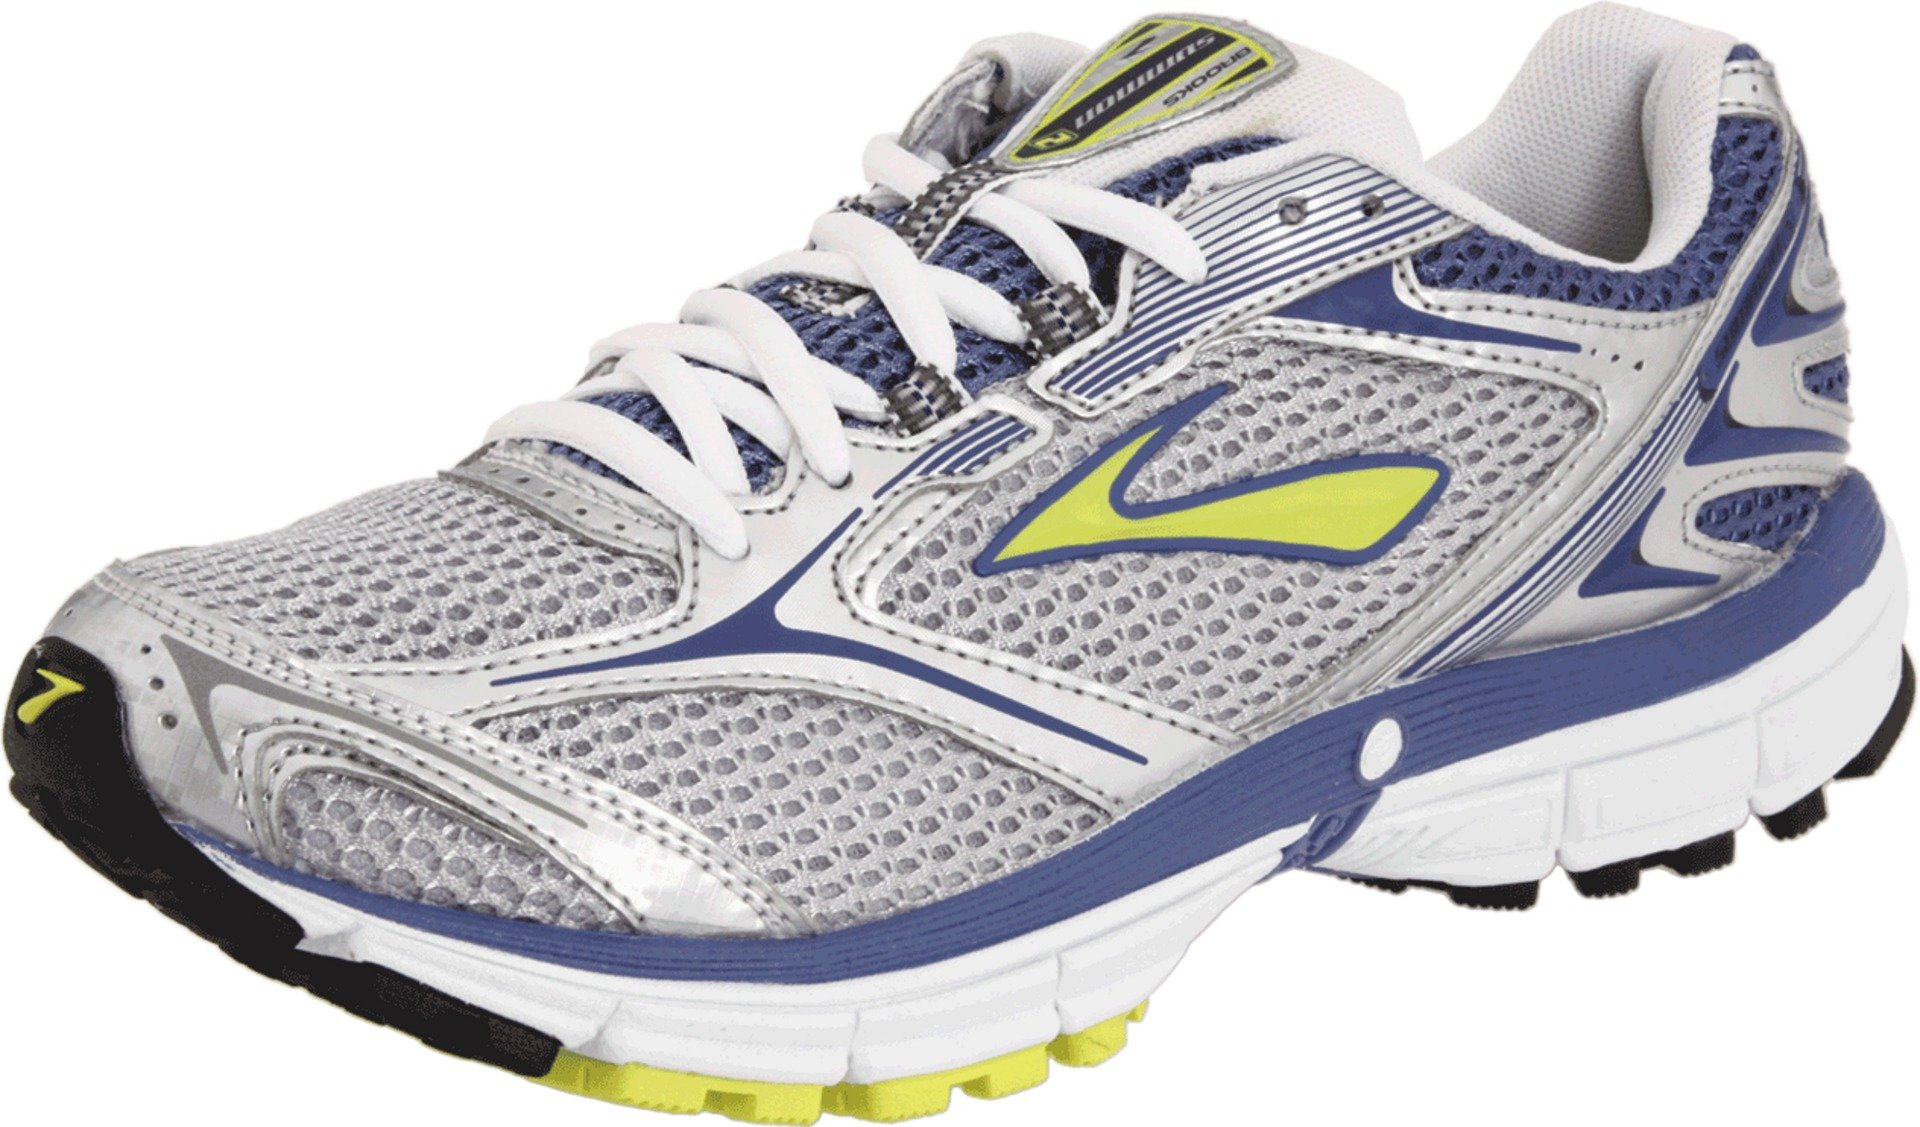 Uk Running tr Eu4 Summon De Brooks 336 5 W SilverChaussures FemmeArgent d2 2 sxBhtrdCQ